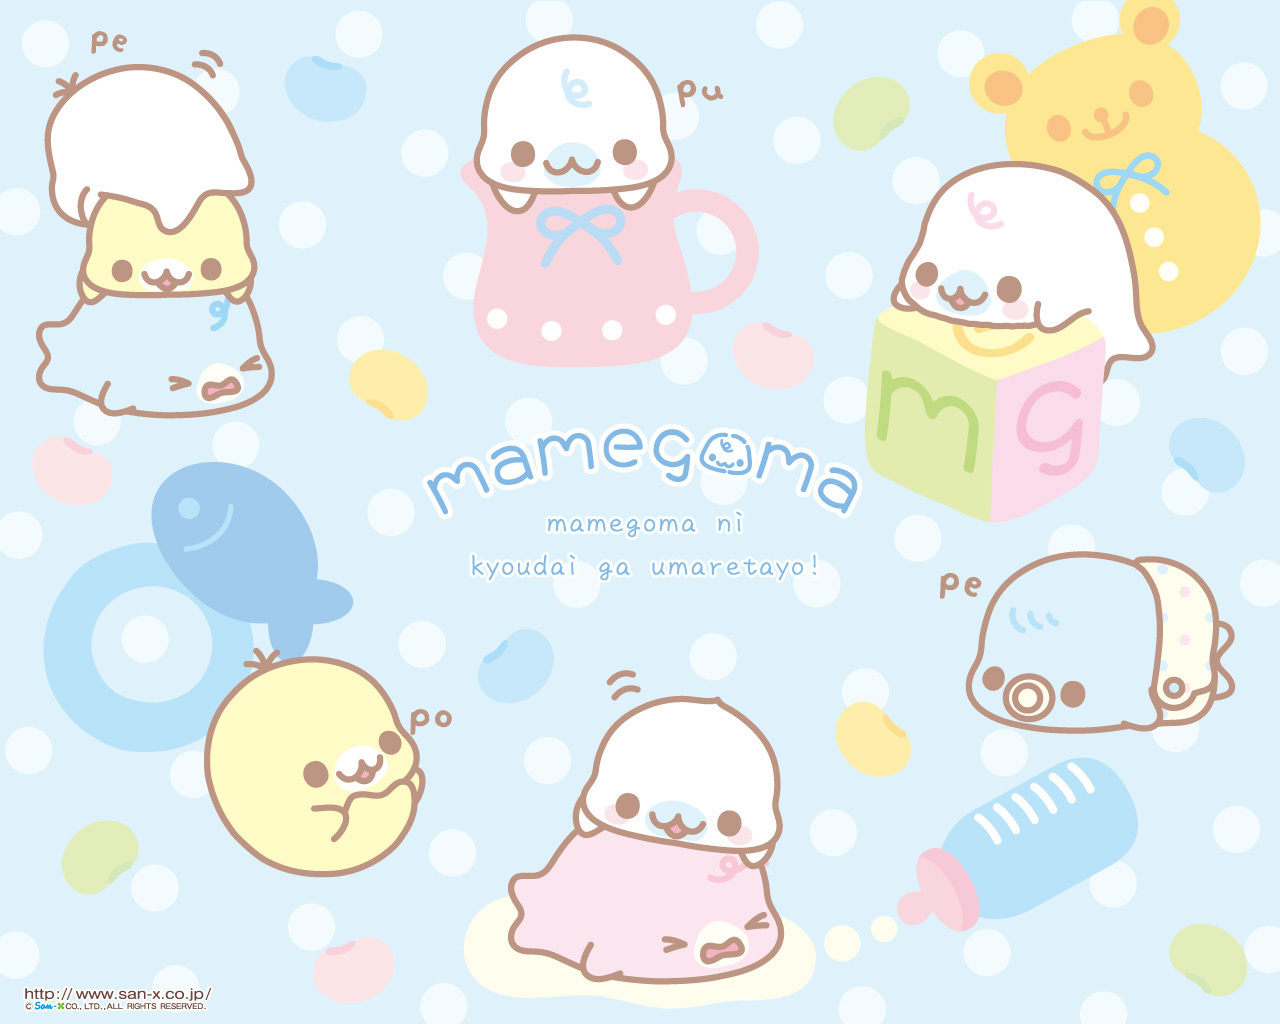 Mamegoma images Mamegoma Baby Teacup Wallpaper HD wallpaper and